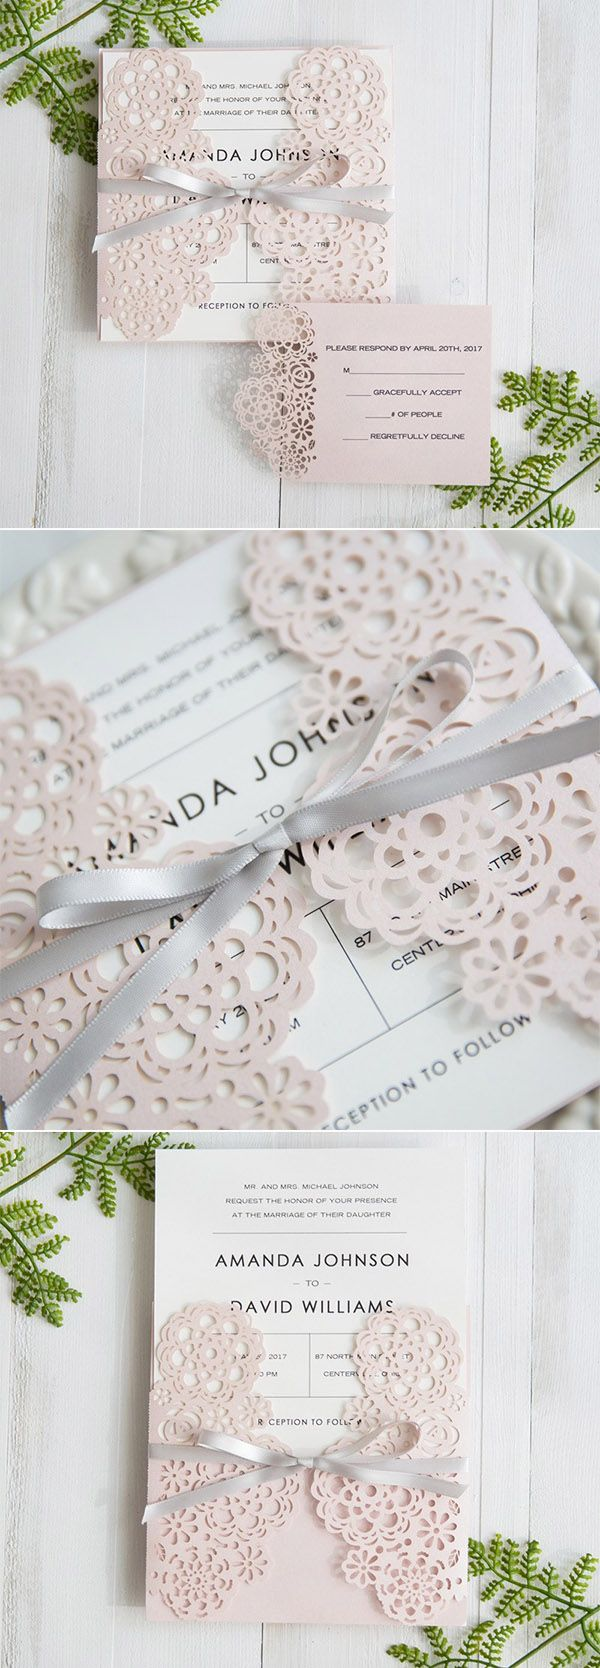 elegant laser cut wedding invitations with blush pink and gray wedding color schemes